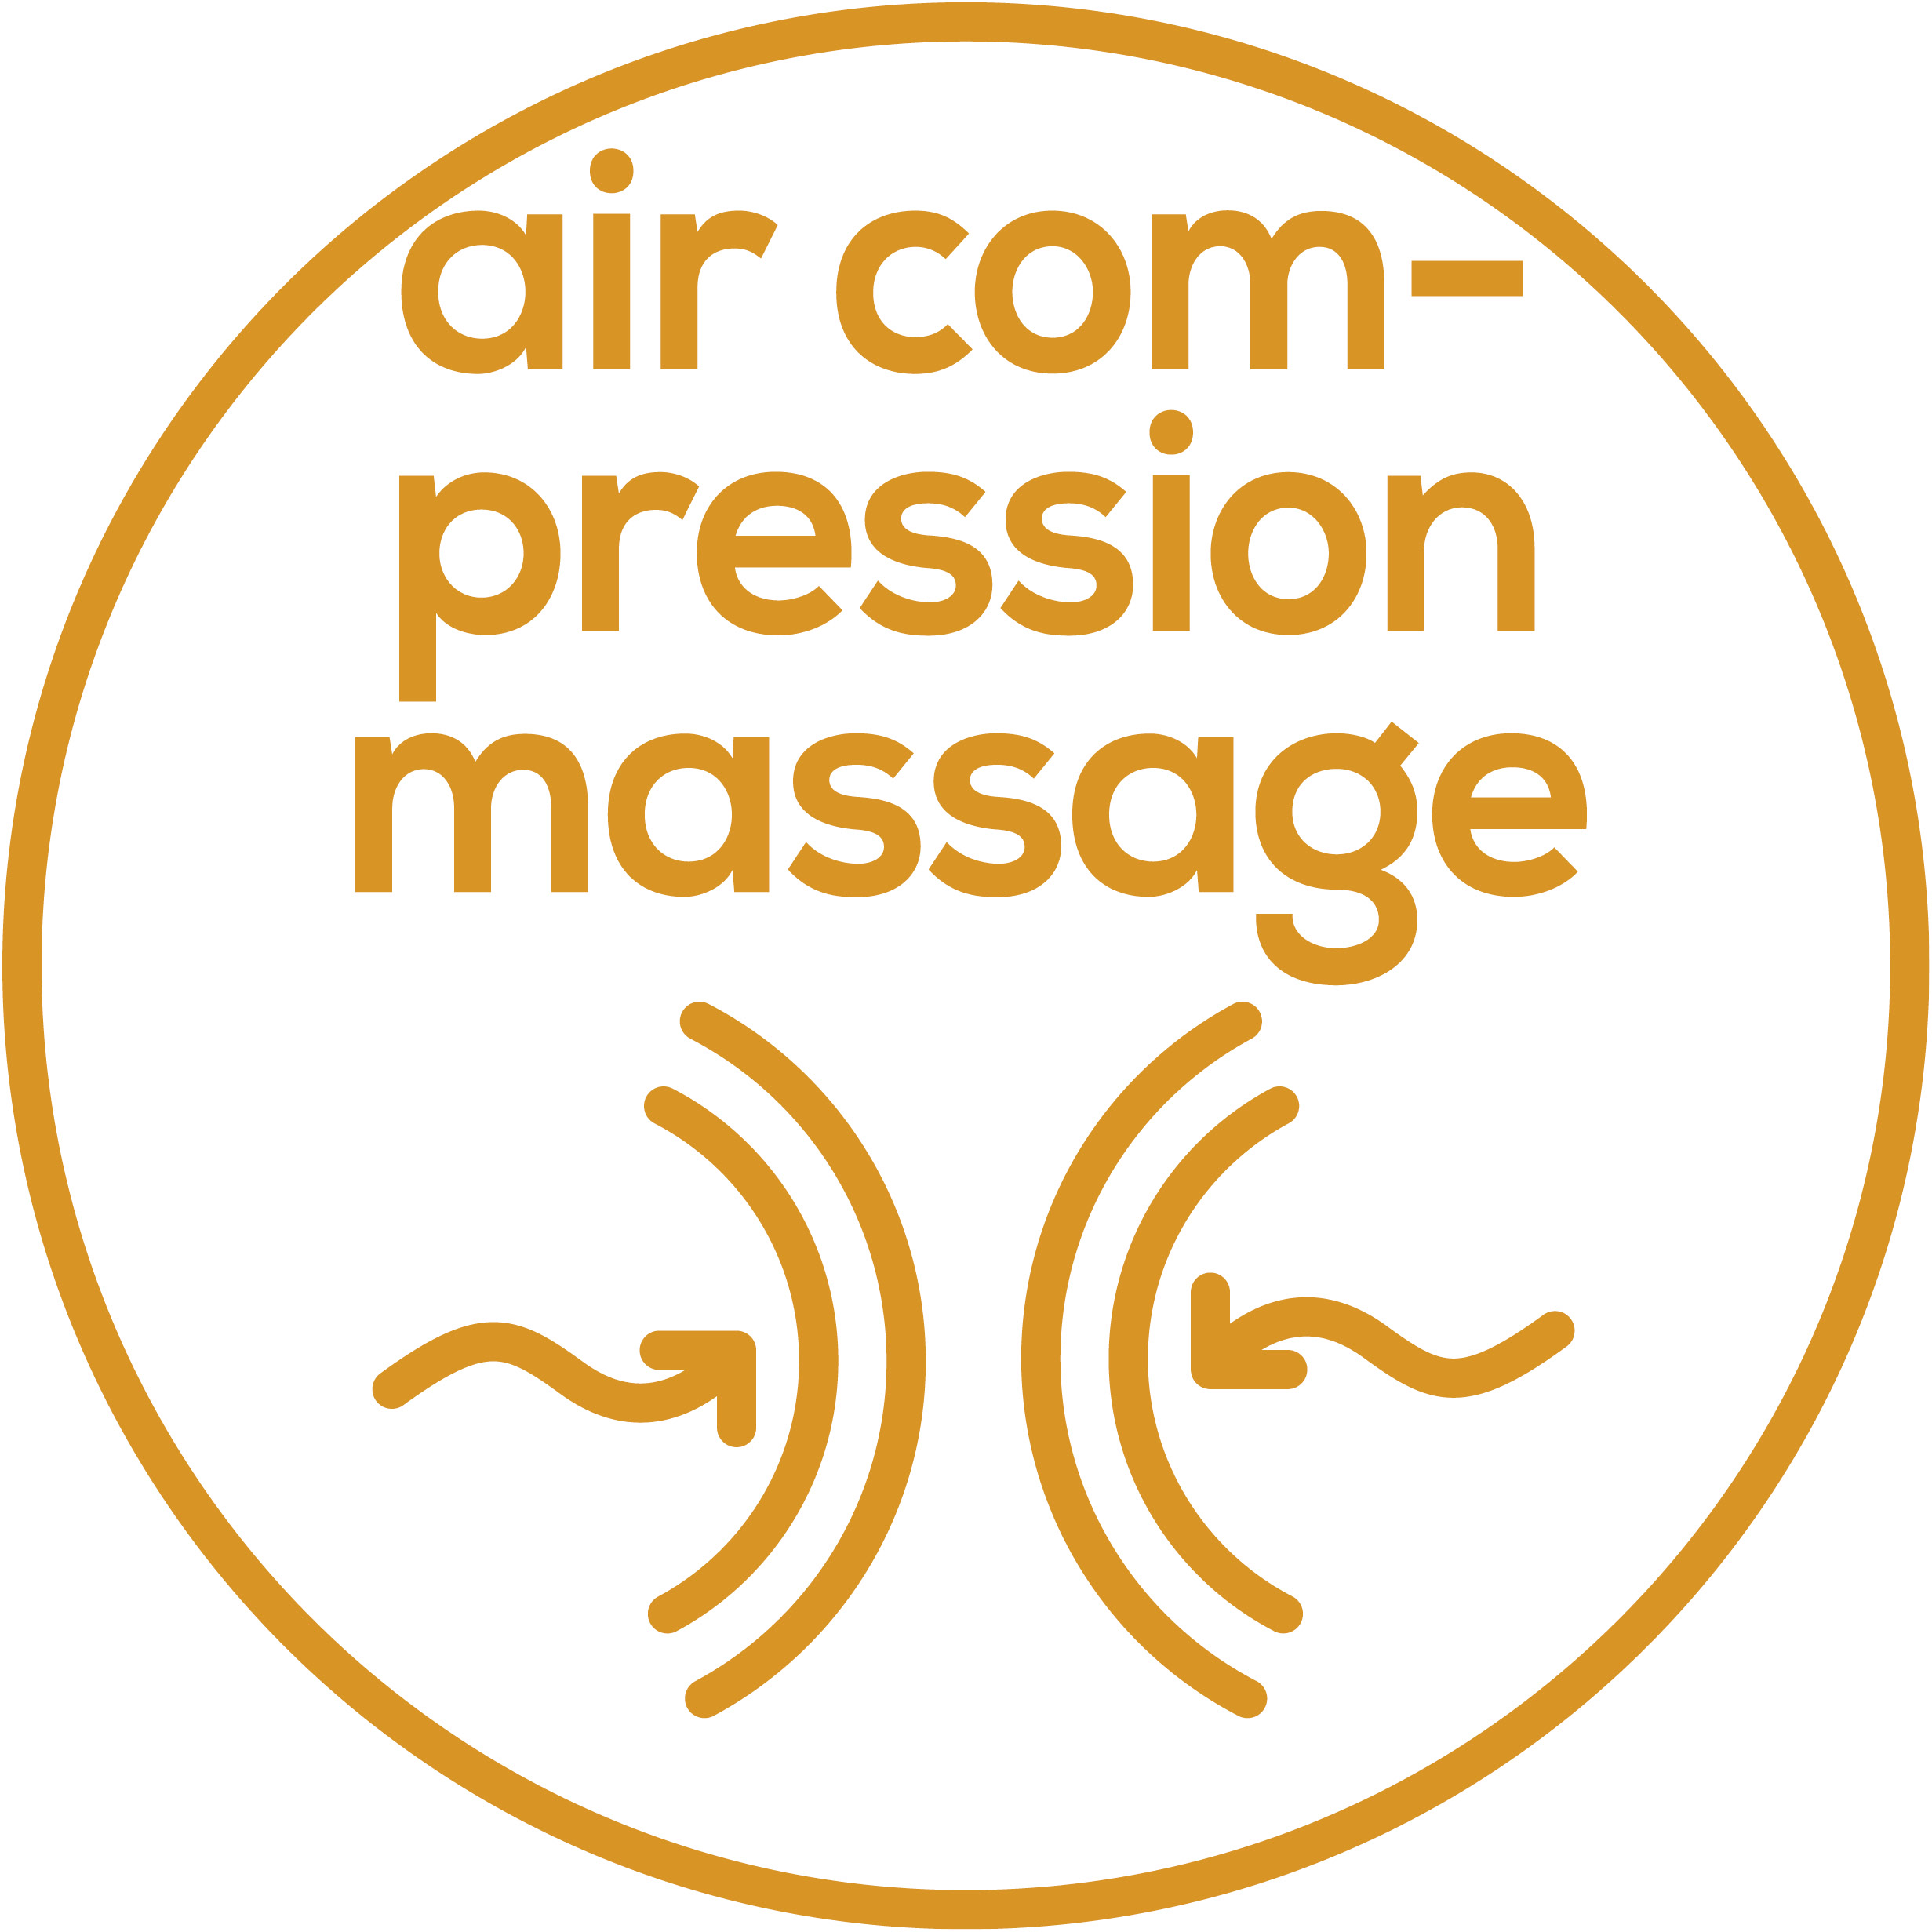 Air compression massage 3 intensity levels